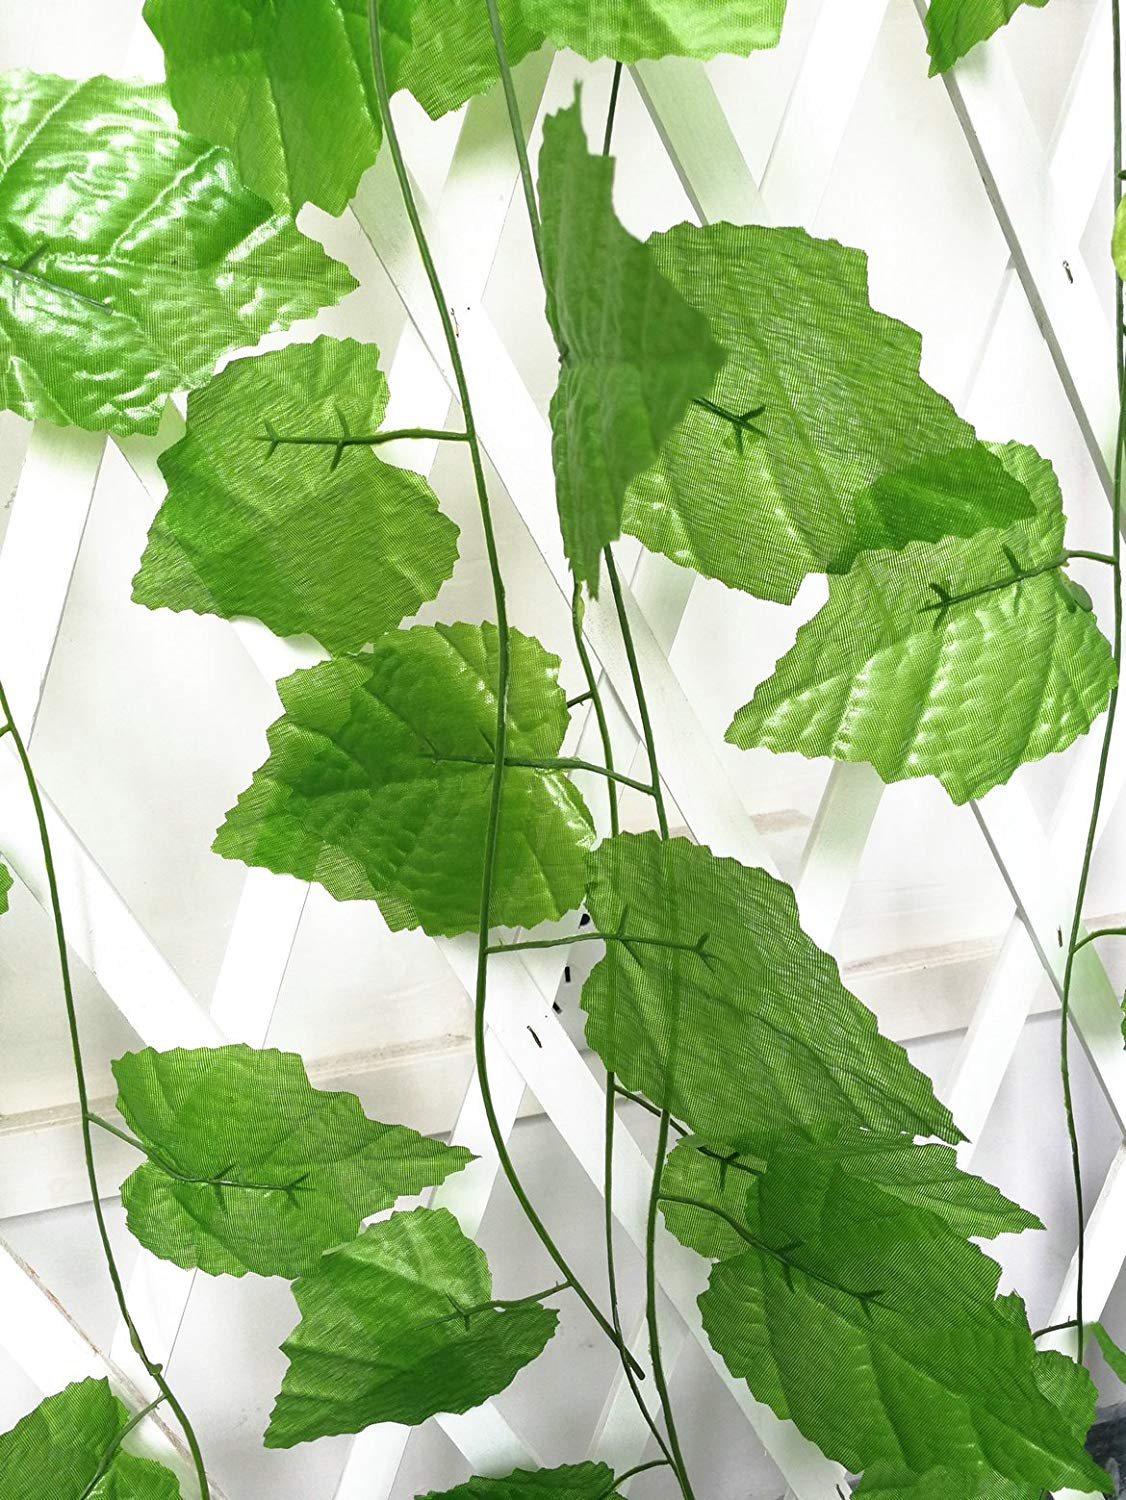 ShinyBeauty artificial vines with leaves artificial vines with leaves and flowers artificial ivy planter 96 Ft - 12